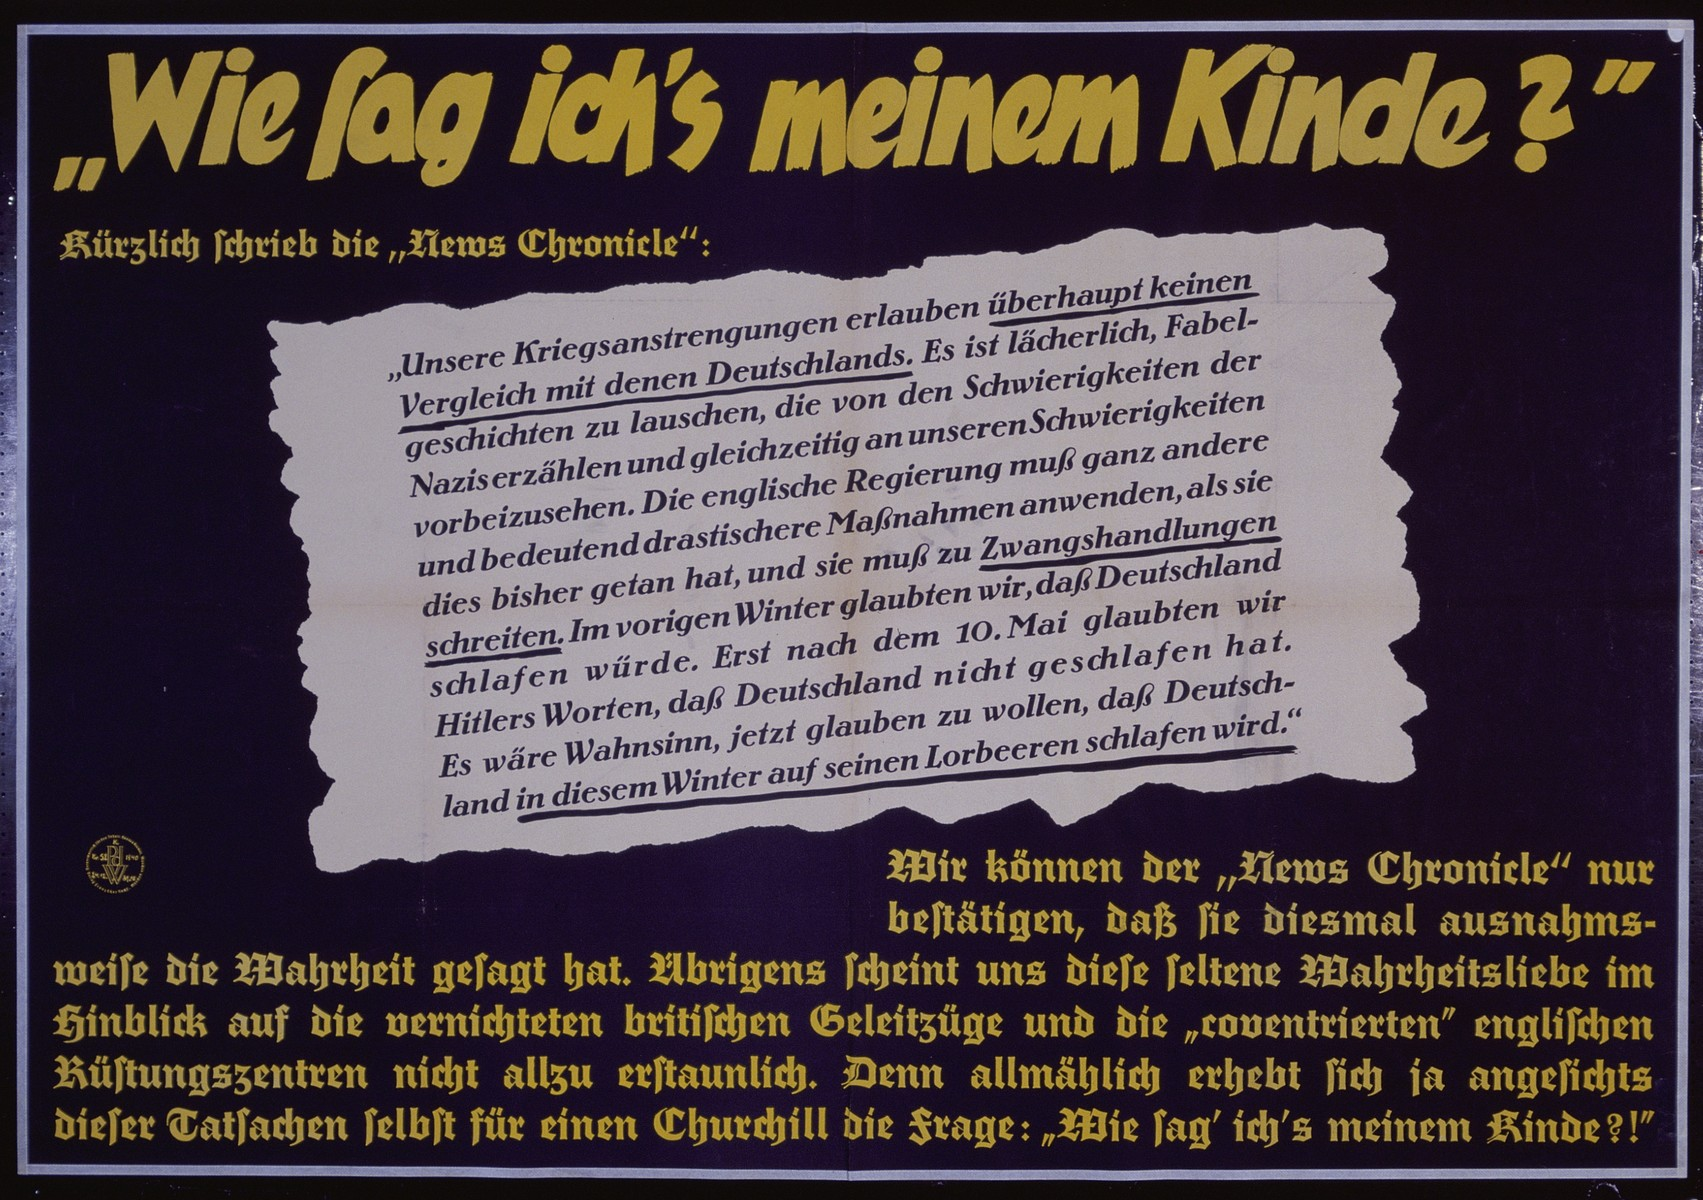 """Nazi propaganda poster entitled, """"Wie sag ich's meinem Kinde?""""  issued by the """"Parole der Woche,"""" a wall newspaper (Wandzeitung) published by the National Socialist Party propaganda office in Munich."""